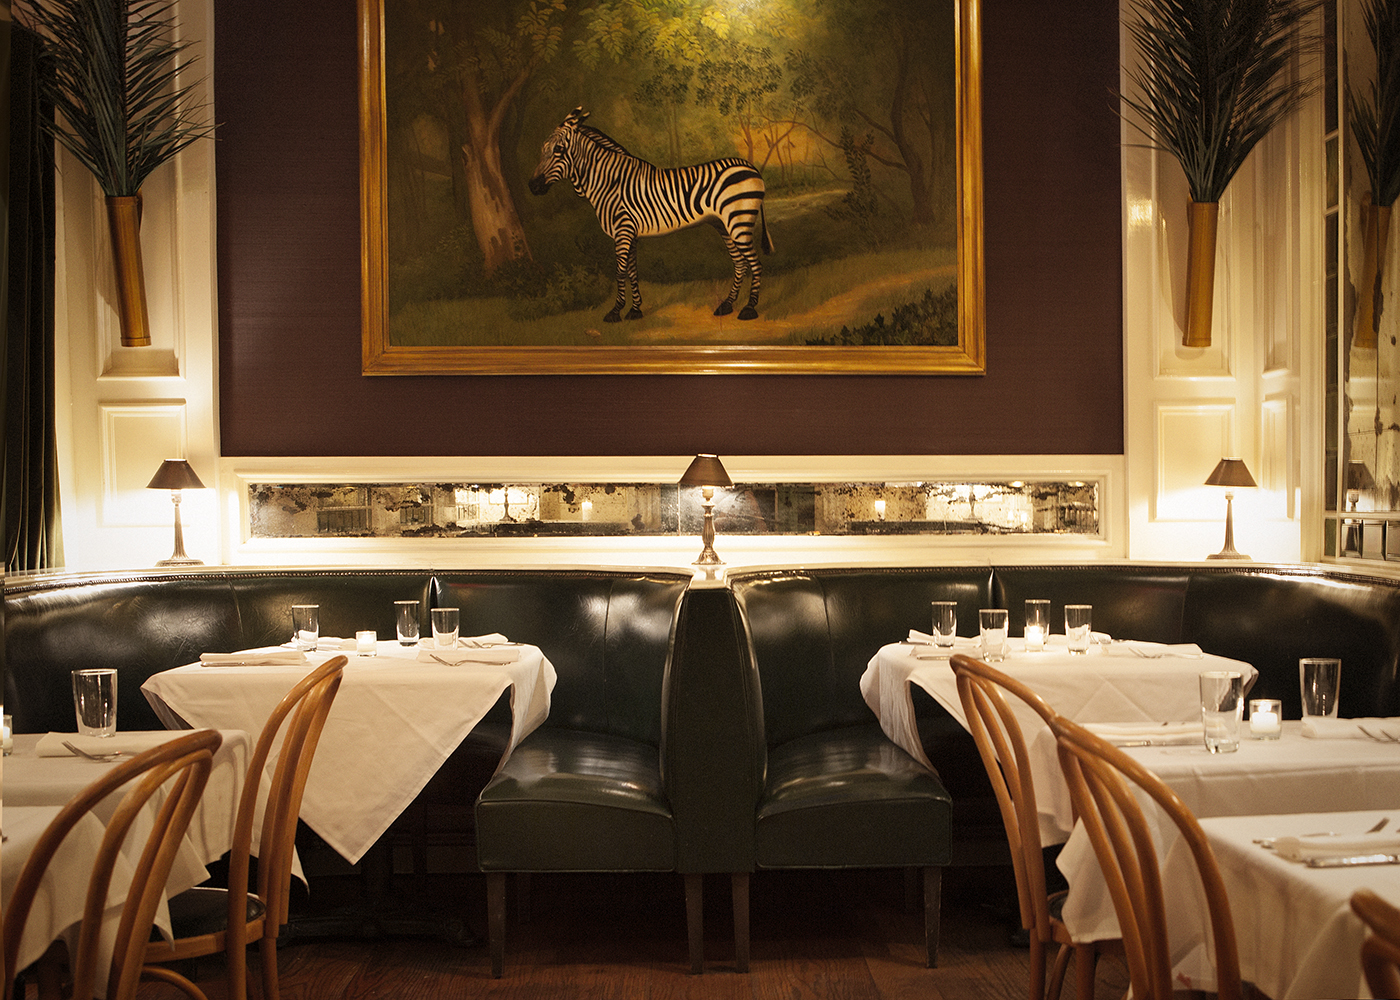 Rows of tables and chairs are organized in the dimly lit dining room of a white tablecloth restaurant. At the end of the dining room, a large photo of a zebra hangs on the wall.